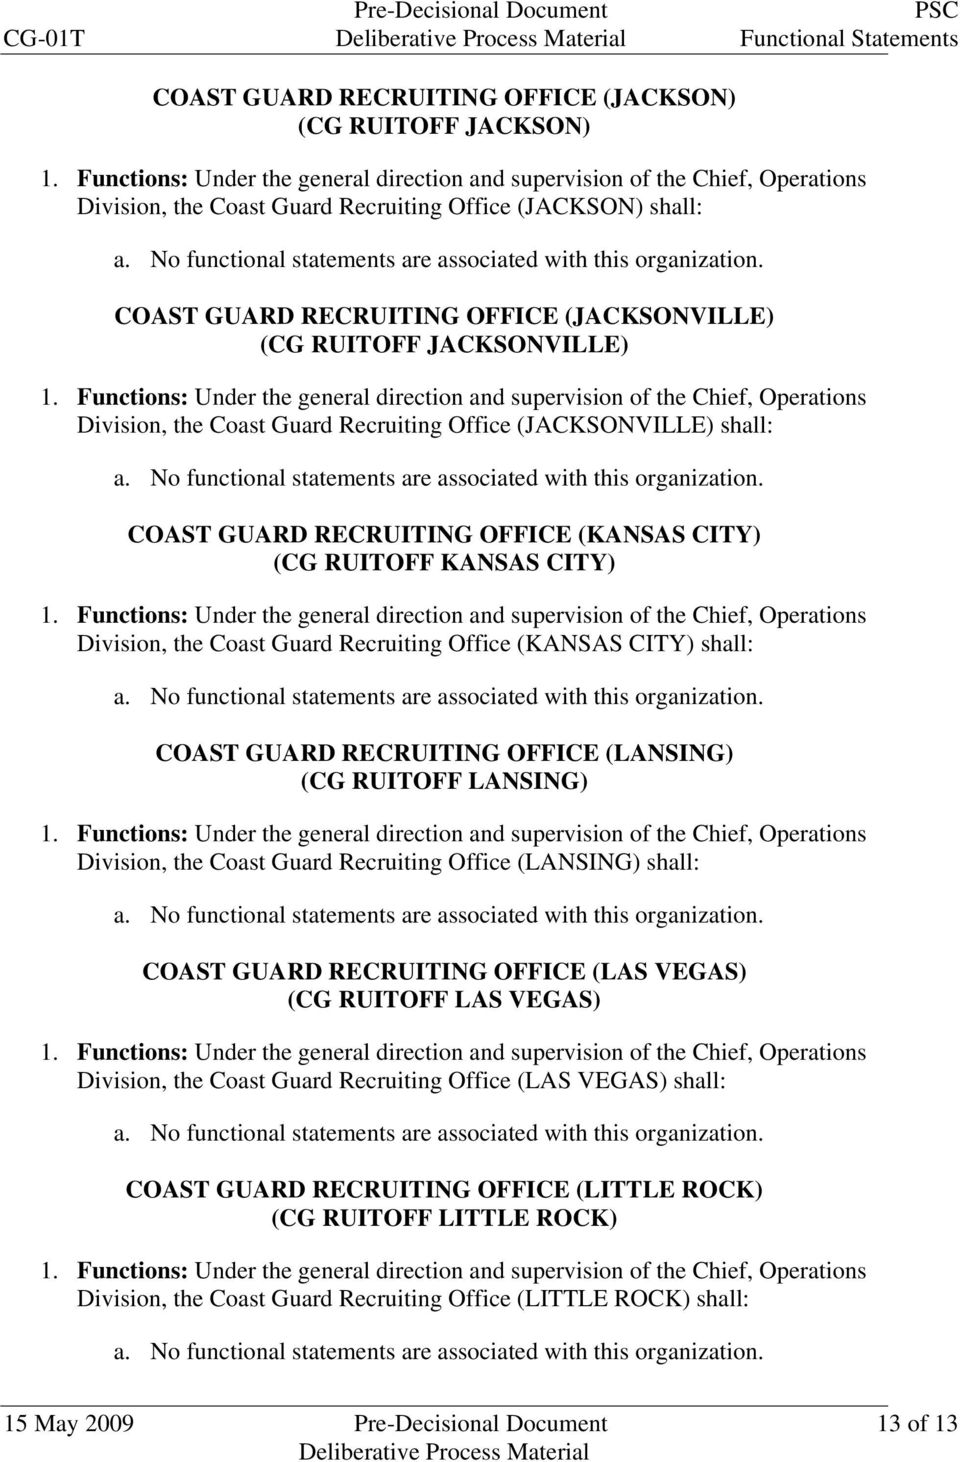 Office (KANSAS CITY) shall: COAST GUARD RECRUITING OFFICE (LANSING) (CG RUITOFF LANSING) Division, the Coast Guard Recruiting Office (LANSING) shall: COAST GUARD RECRUITING OFFICE (LAS VEGAS) (CG